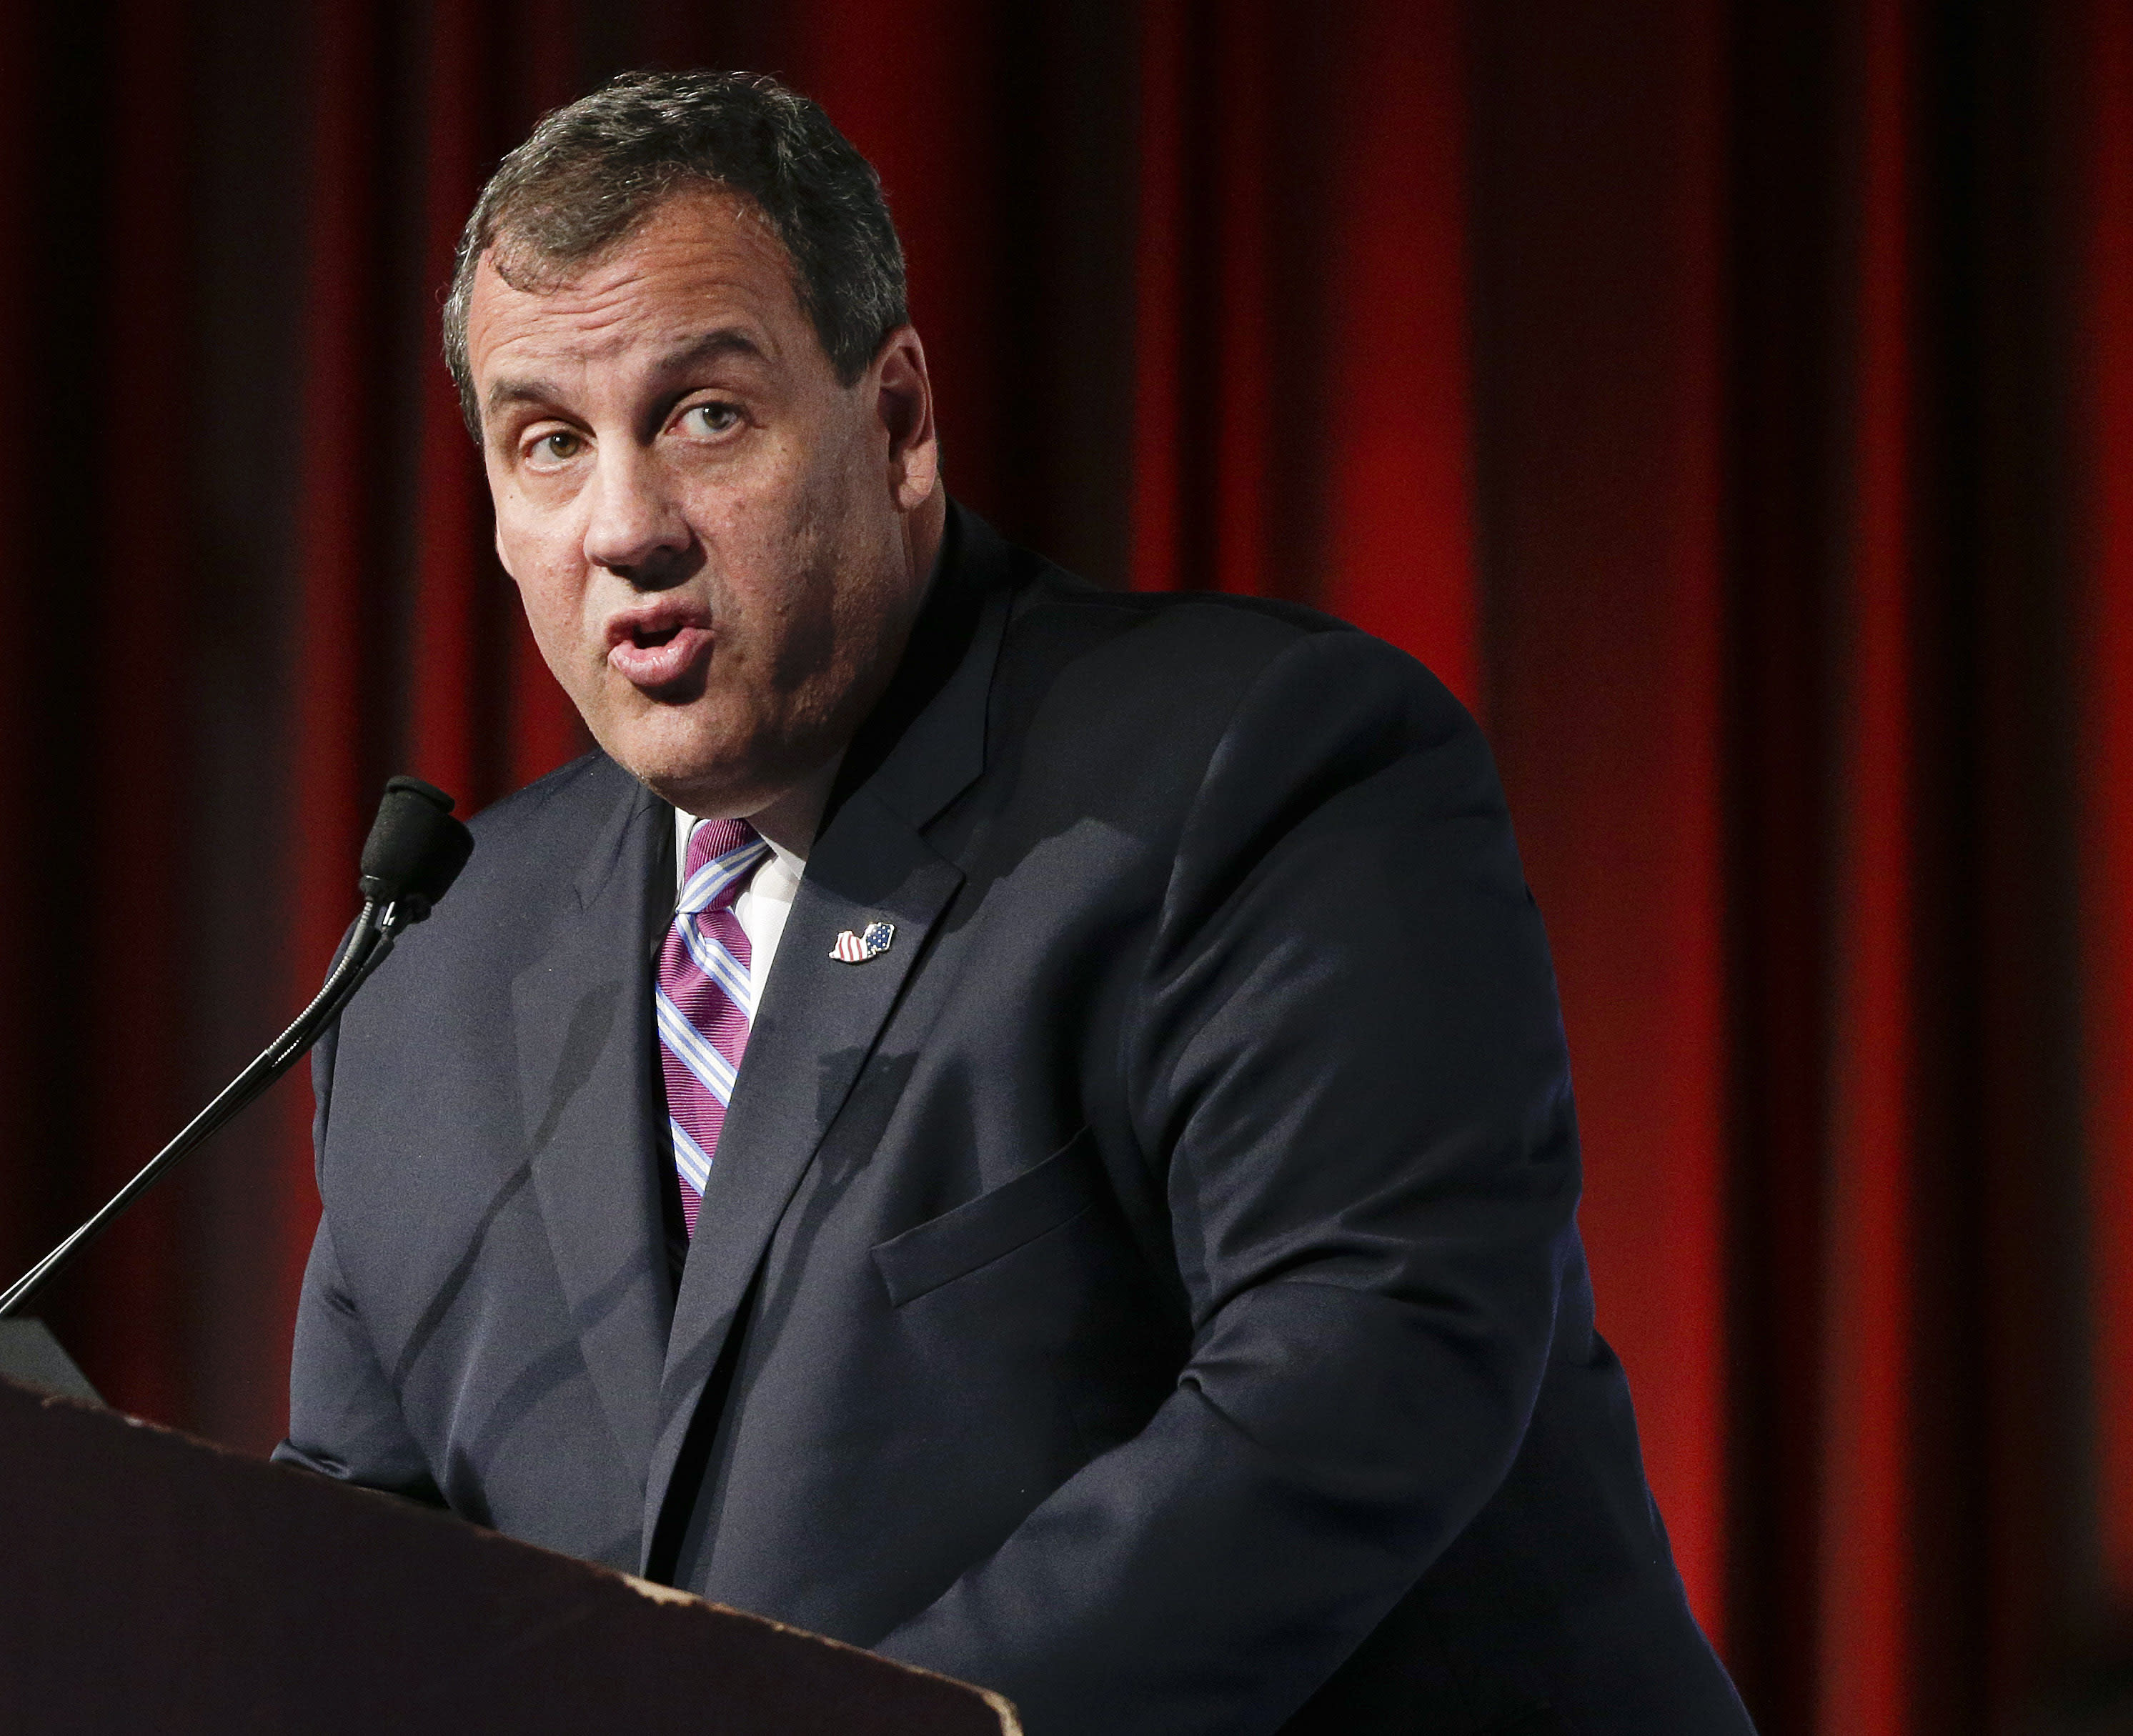 2016 hopefuls Christie, Cruz court Jewish donors in New York